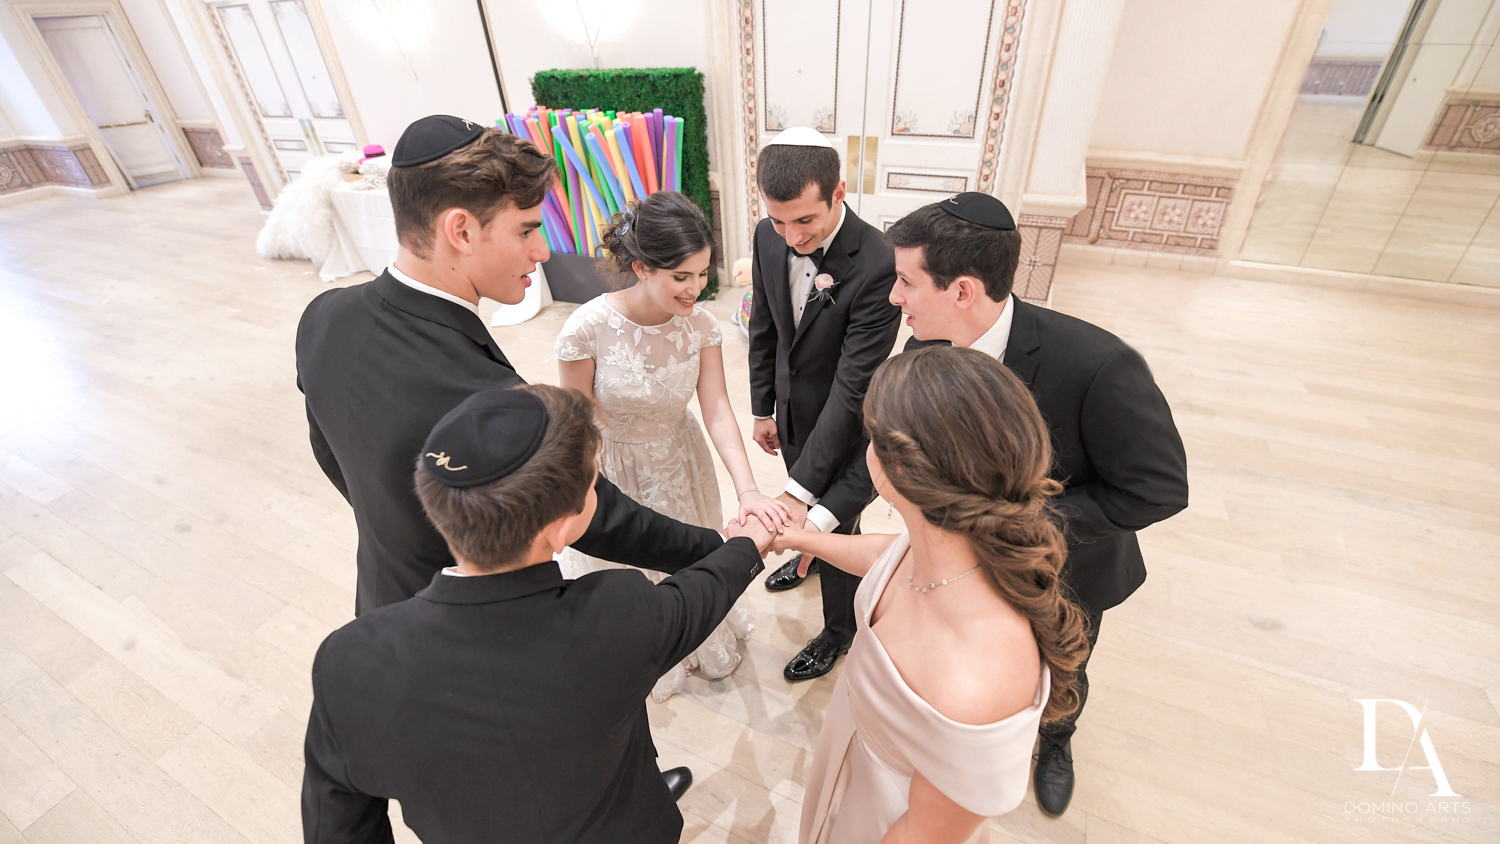 family fun at Luxury Summer Wedding at The Colony Hotel Palm Beach by Domino Arts Photography